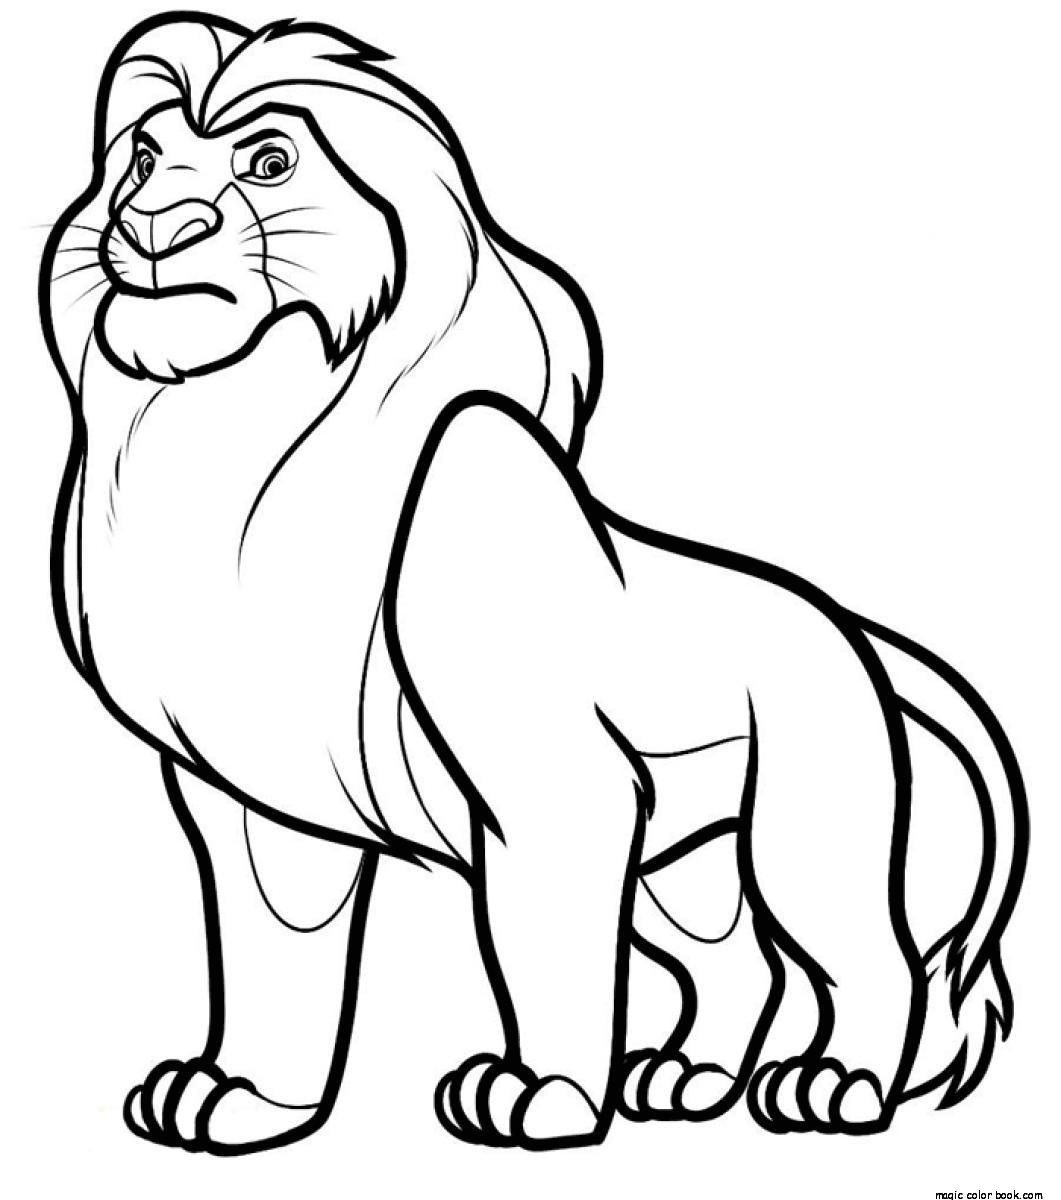 Disney Lion King Coloring Pages at GetDrawings.com | Free for ...